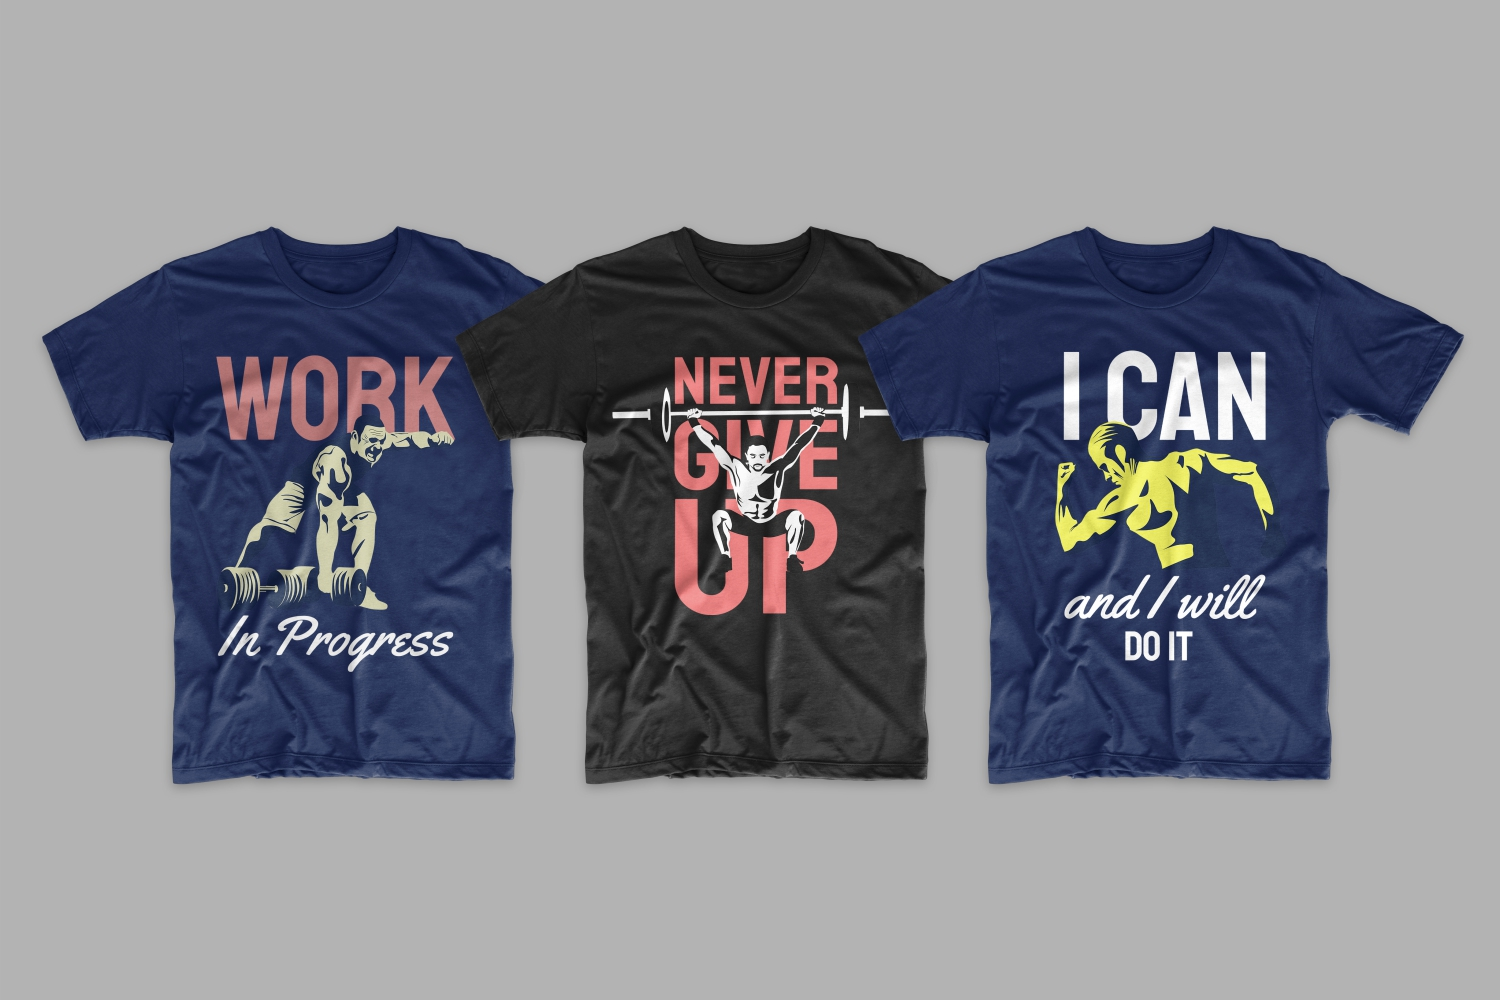 Three T-shirts: two blue and black with male athletes and short motivational phrases.